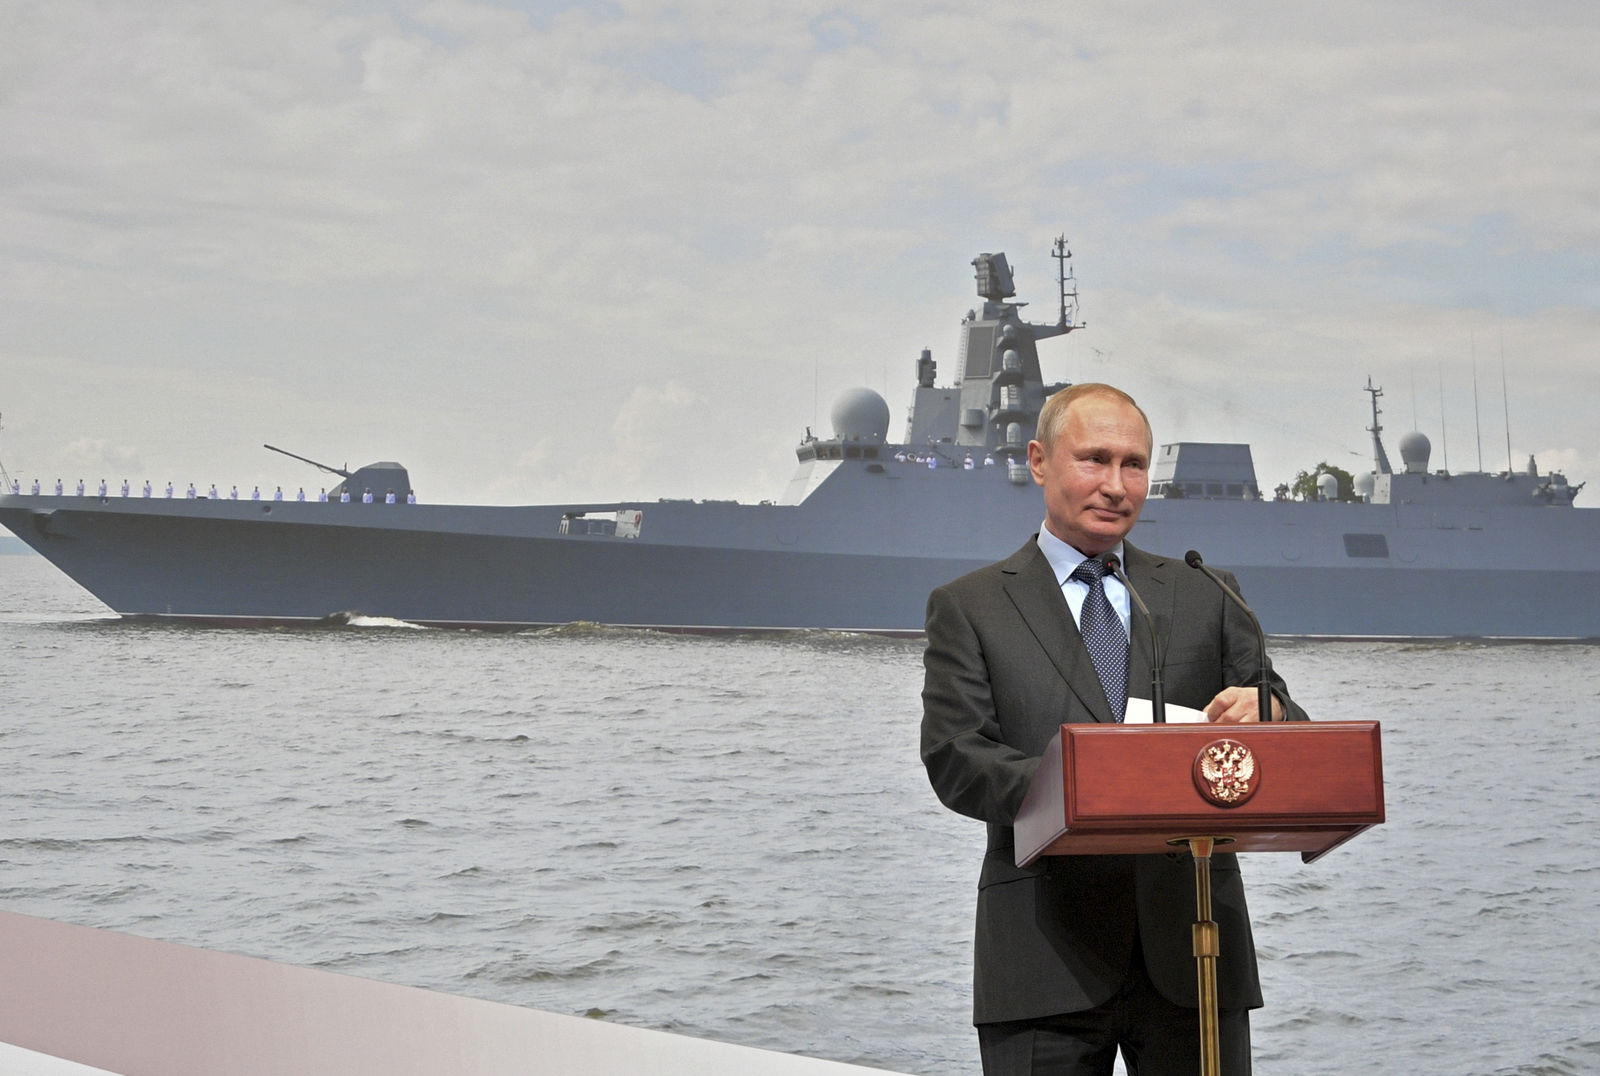 Russian President Vladimir Putin speaks during as he visits a shipyard in St. Petersburg, Russia, Tuesday, April 23, 2019. Putin said the government will pursue an ambitious navy modernization effort. (Alexei Druzhinin, Sputnik, Kremlin Pool Photo via AP)